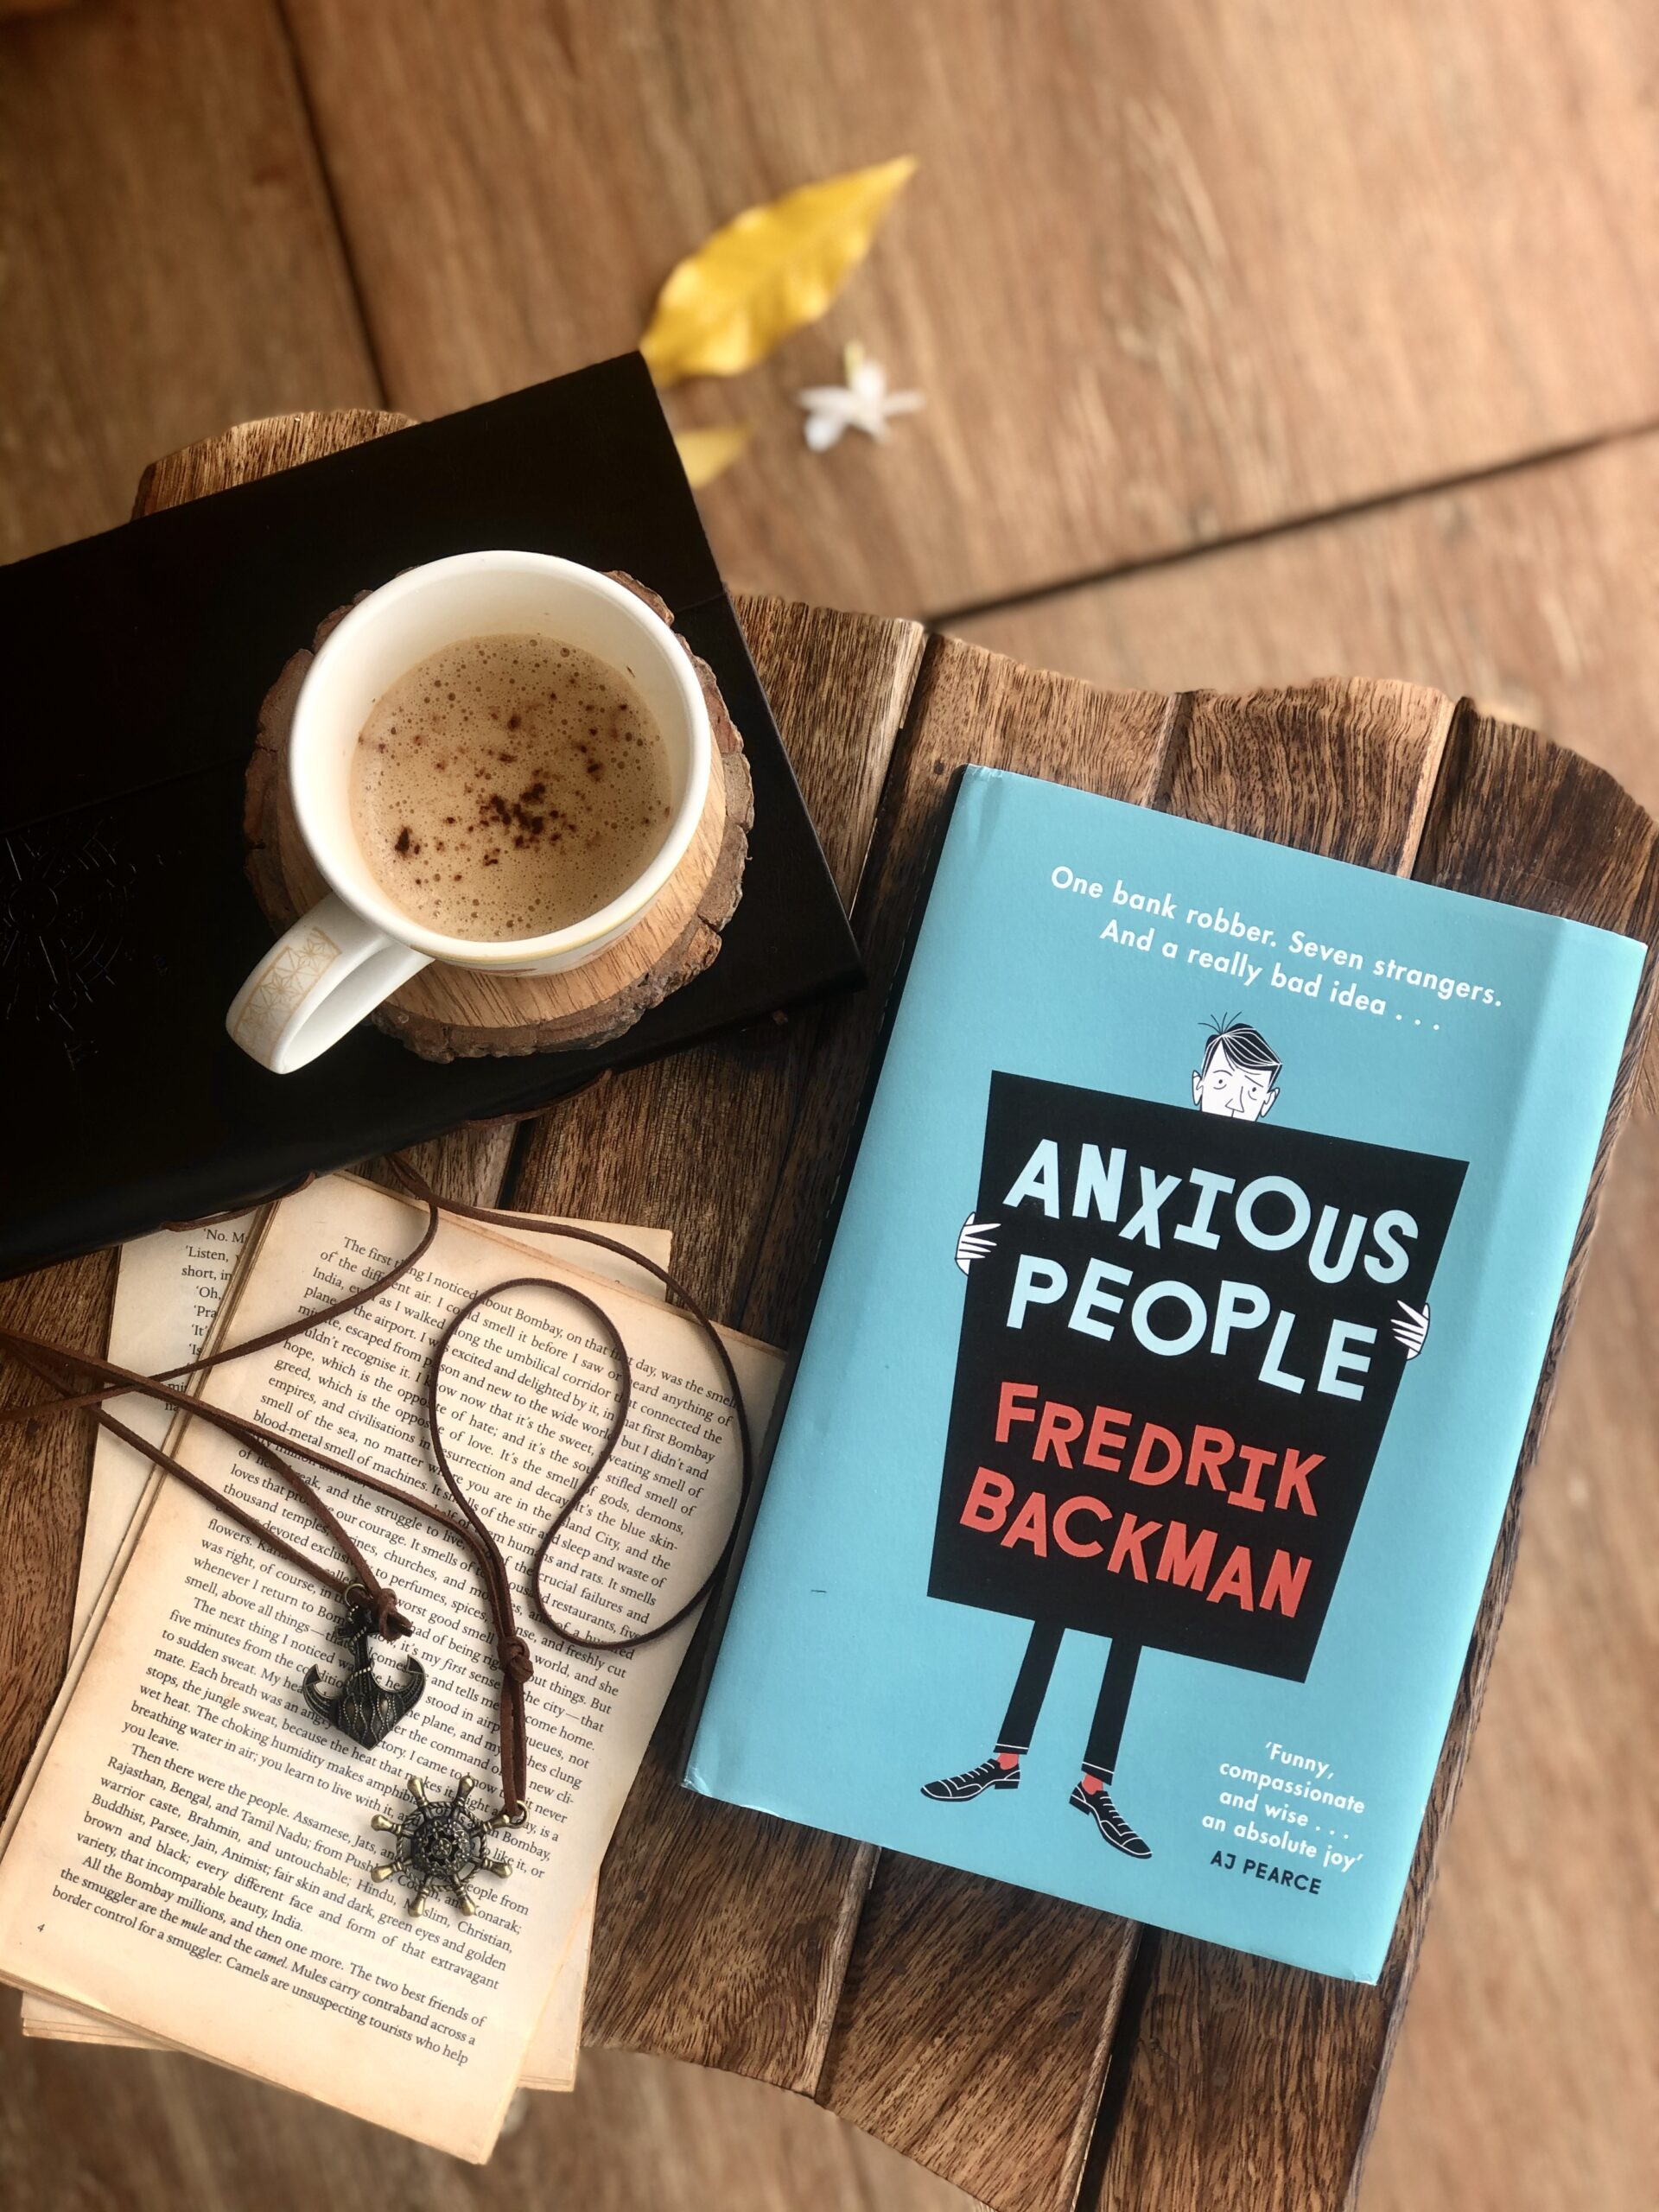 Anxious People by Fredrik Backman- a heartwarming comedy of idiots